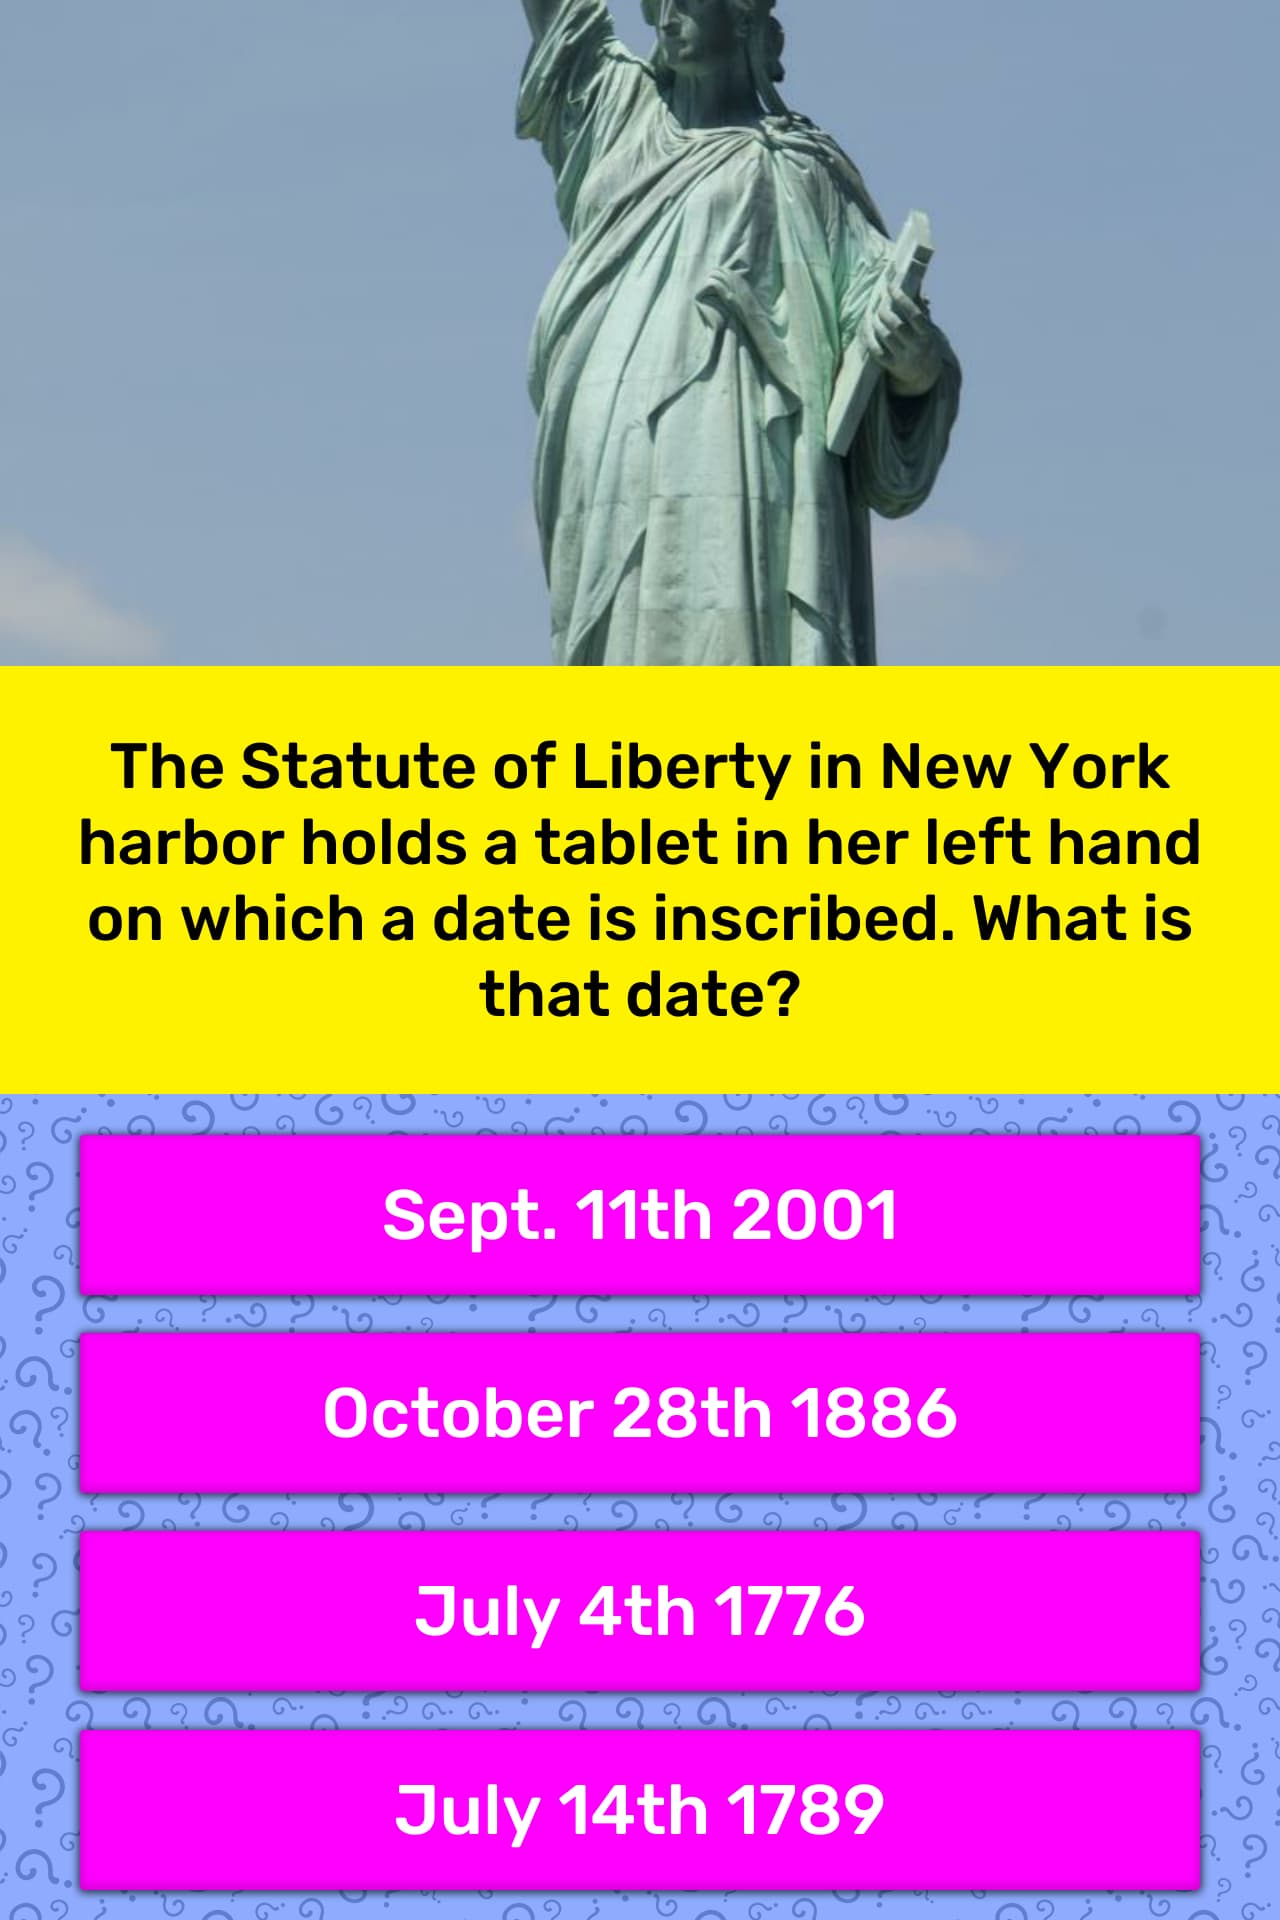 The Statute of Liberty in New York... | Trivia Questions | QuizzClub